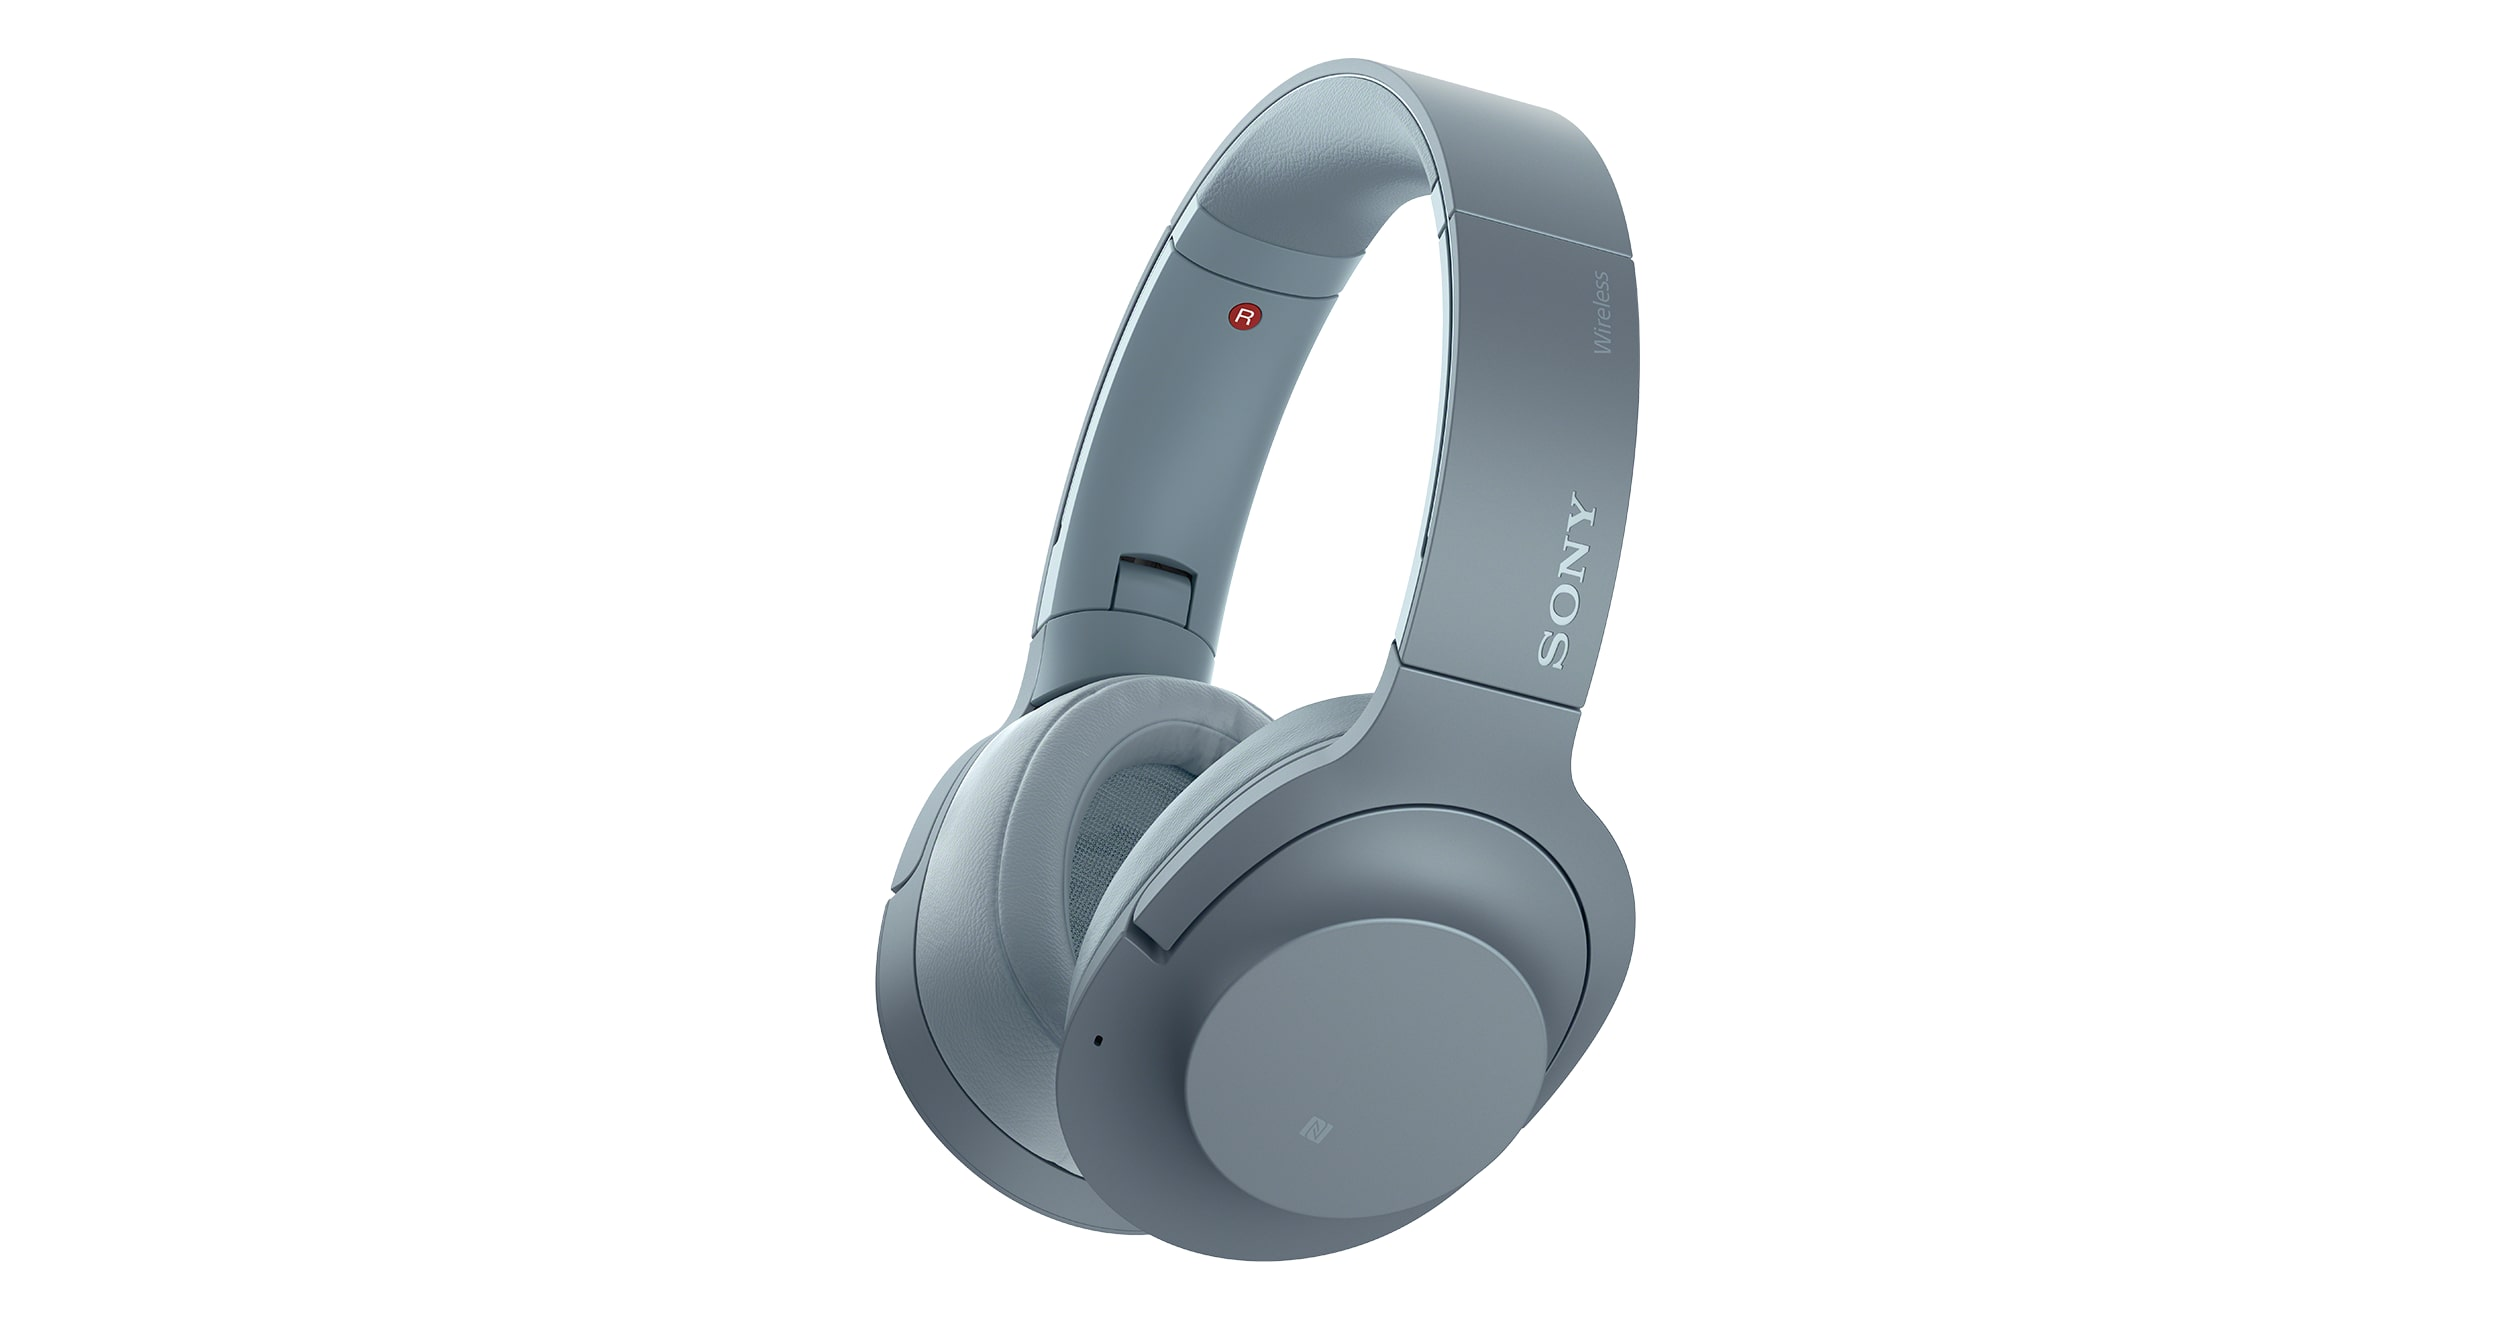 def477a82e4 WH-H900N h.ear on 2 Wireless Noise Cancelling Headphones | WH-H900N ...